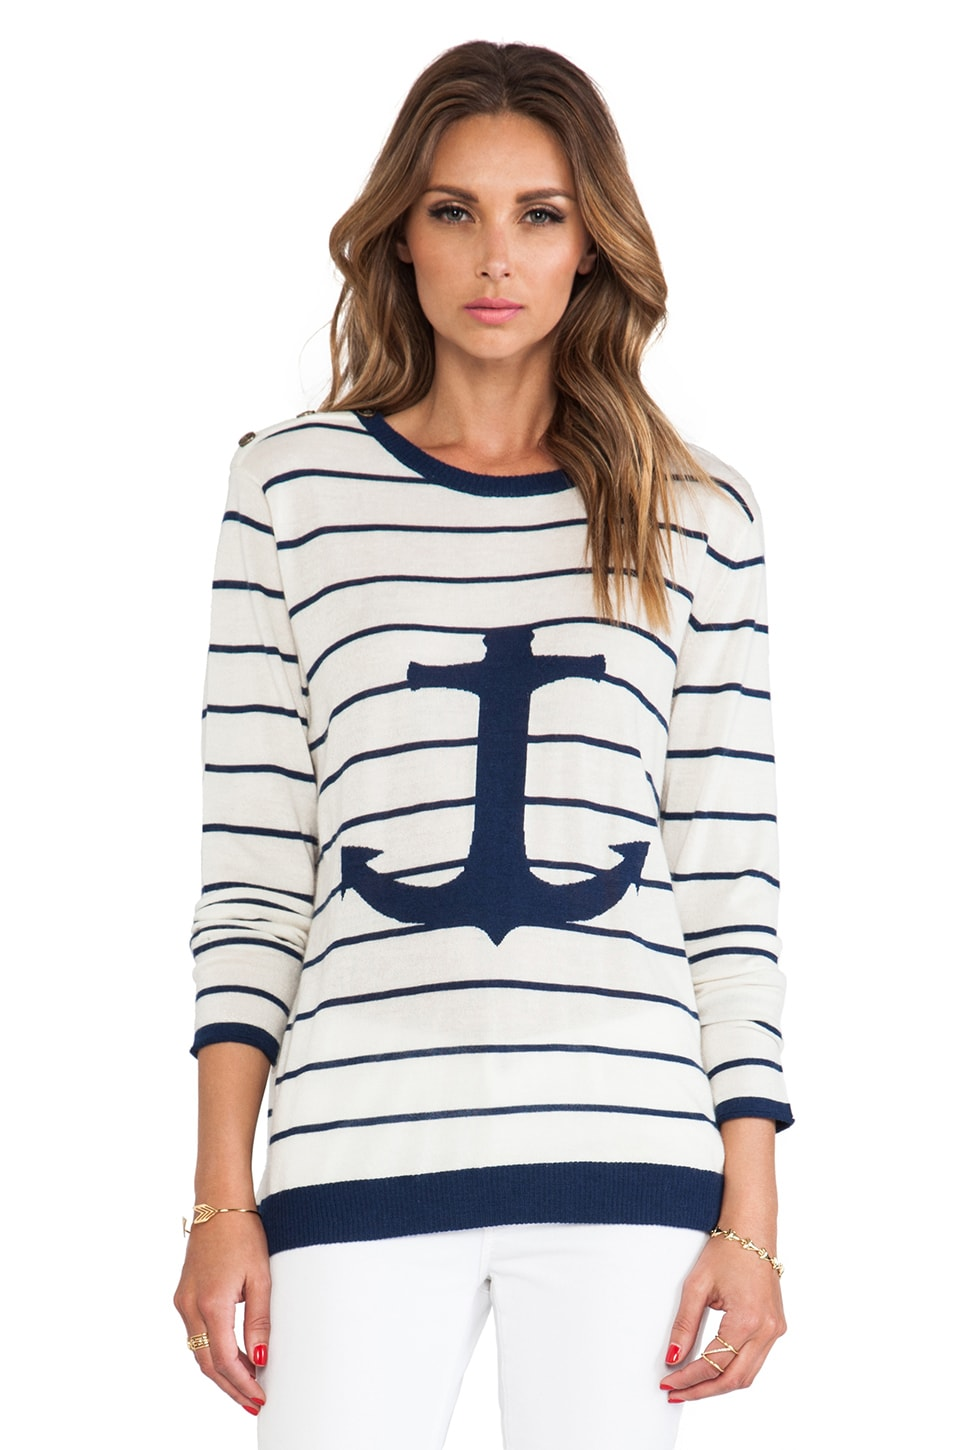 Banjo & Matilda Anchor Crew Sweater in Ivory & Navy